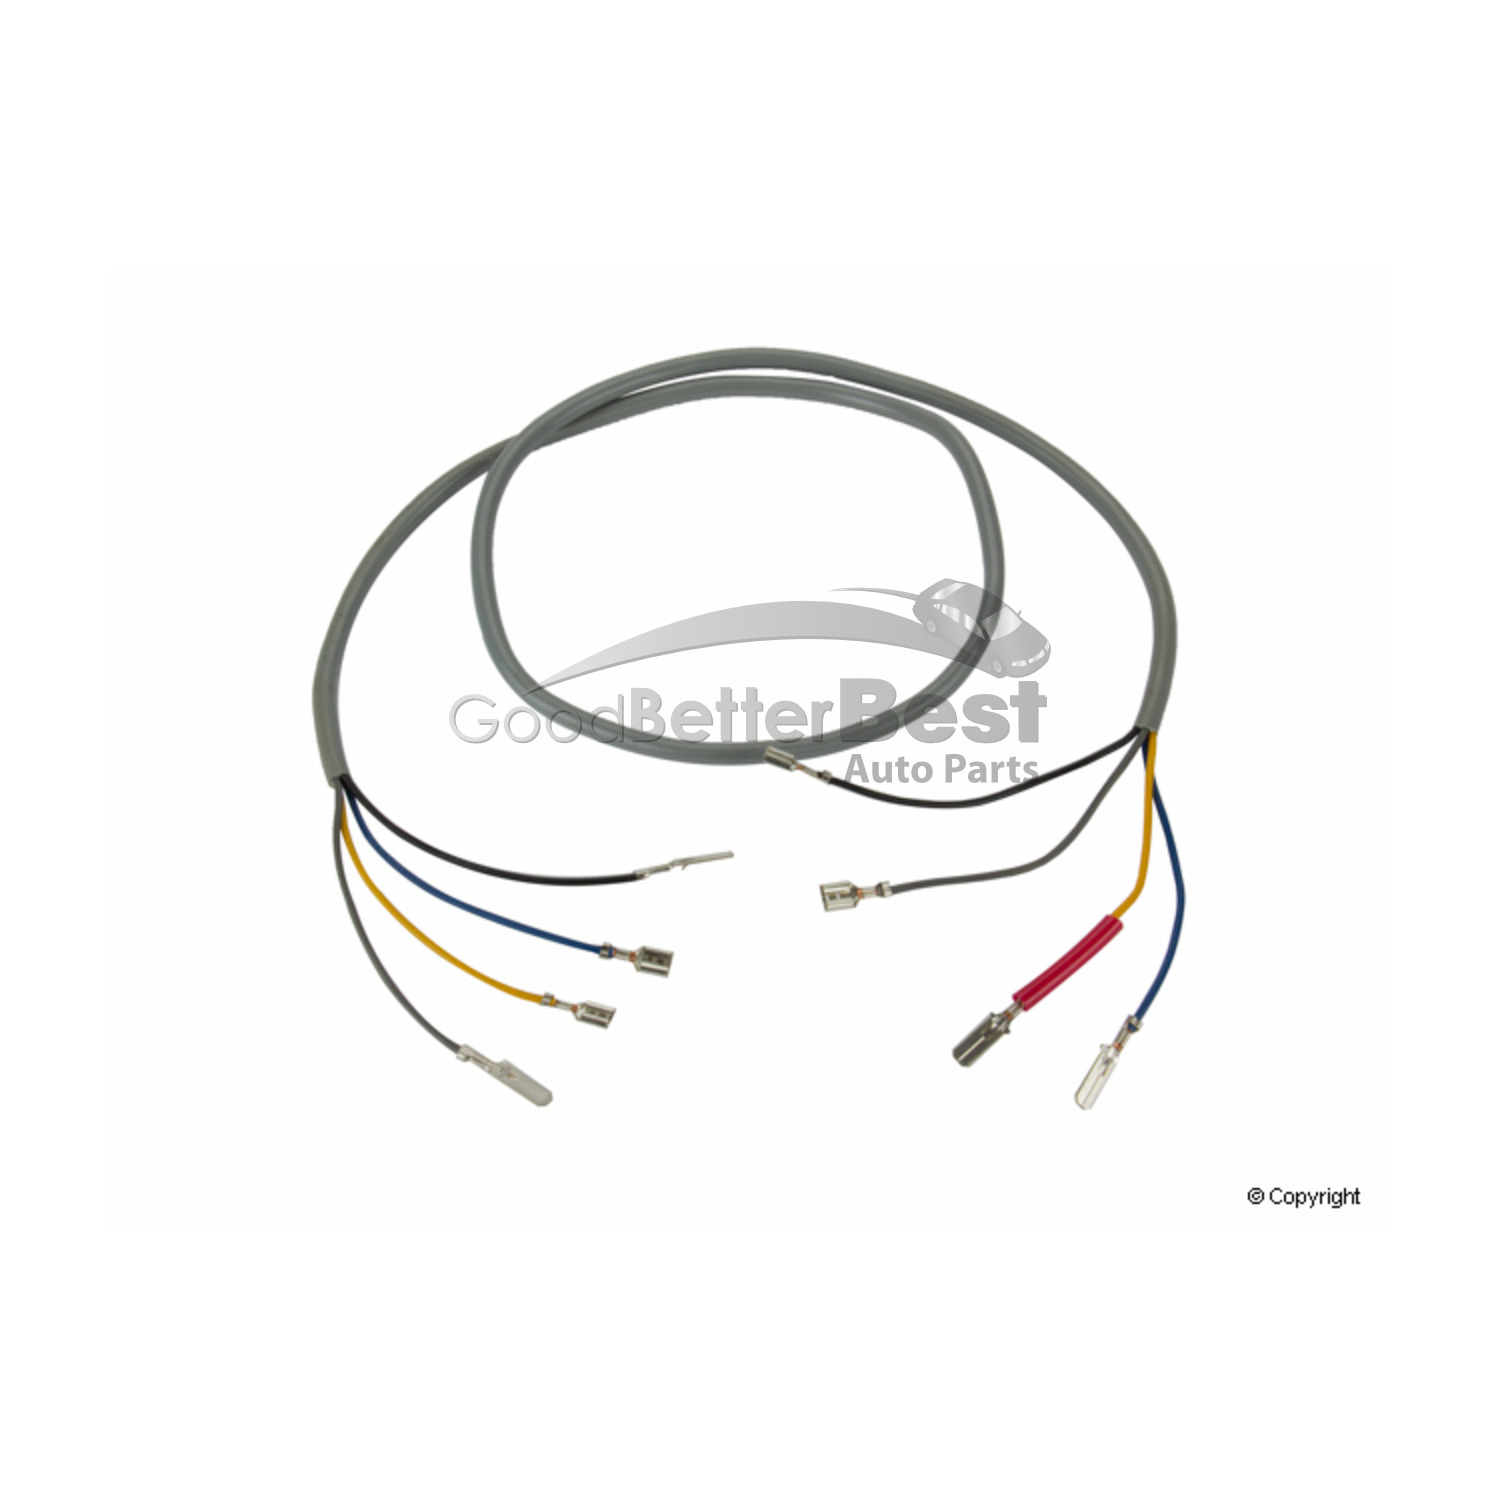 One New Professional Parts Sweden Tailgate Wiring Harness